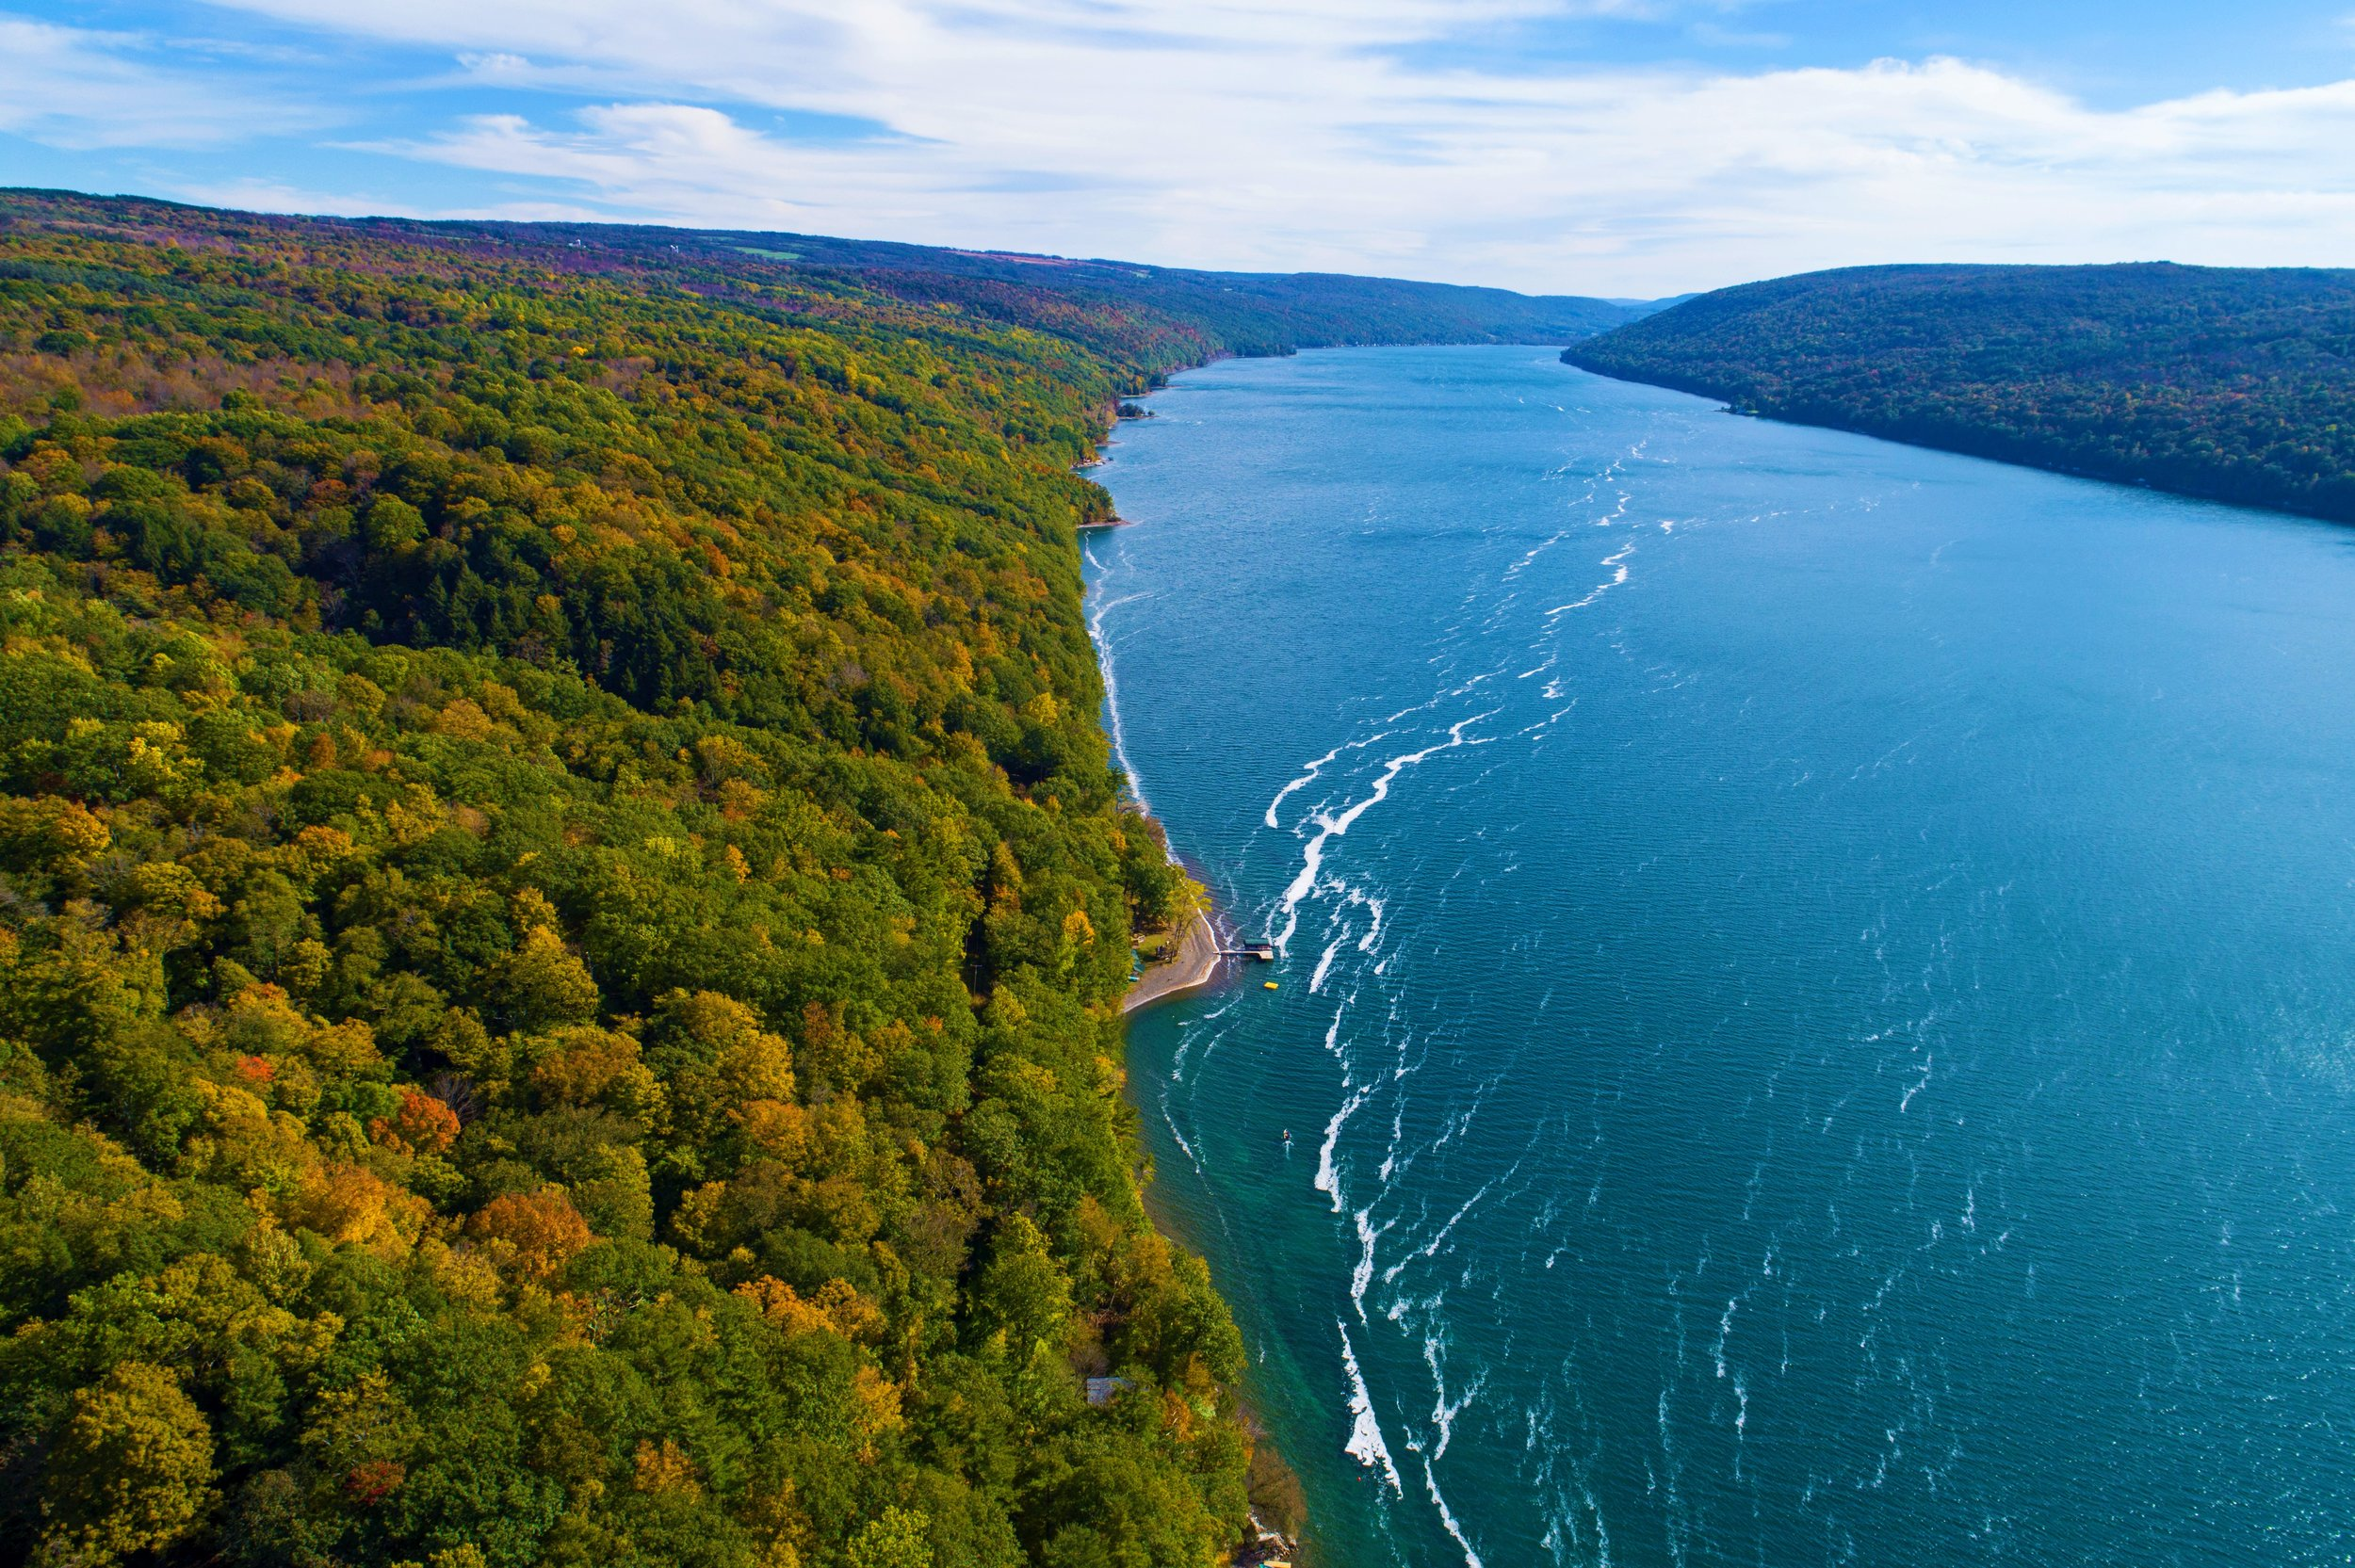 (1)   Camp Longhorn, 974 Ten Mile Point, Skaneateles, NY 13152, For Sale DJI_0293.jpg